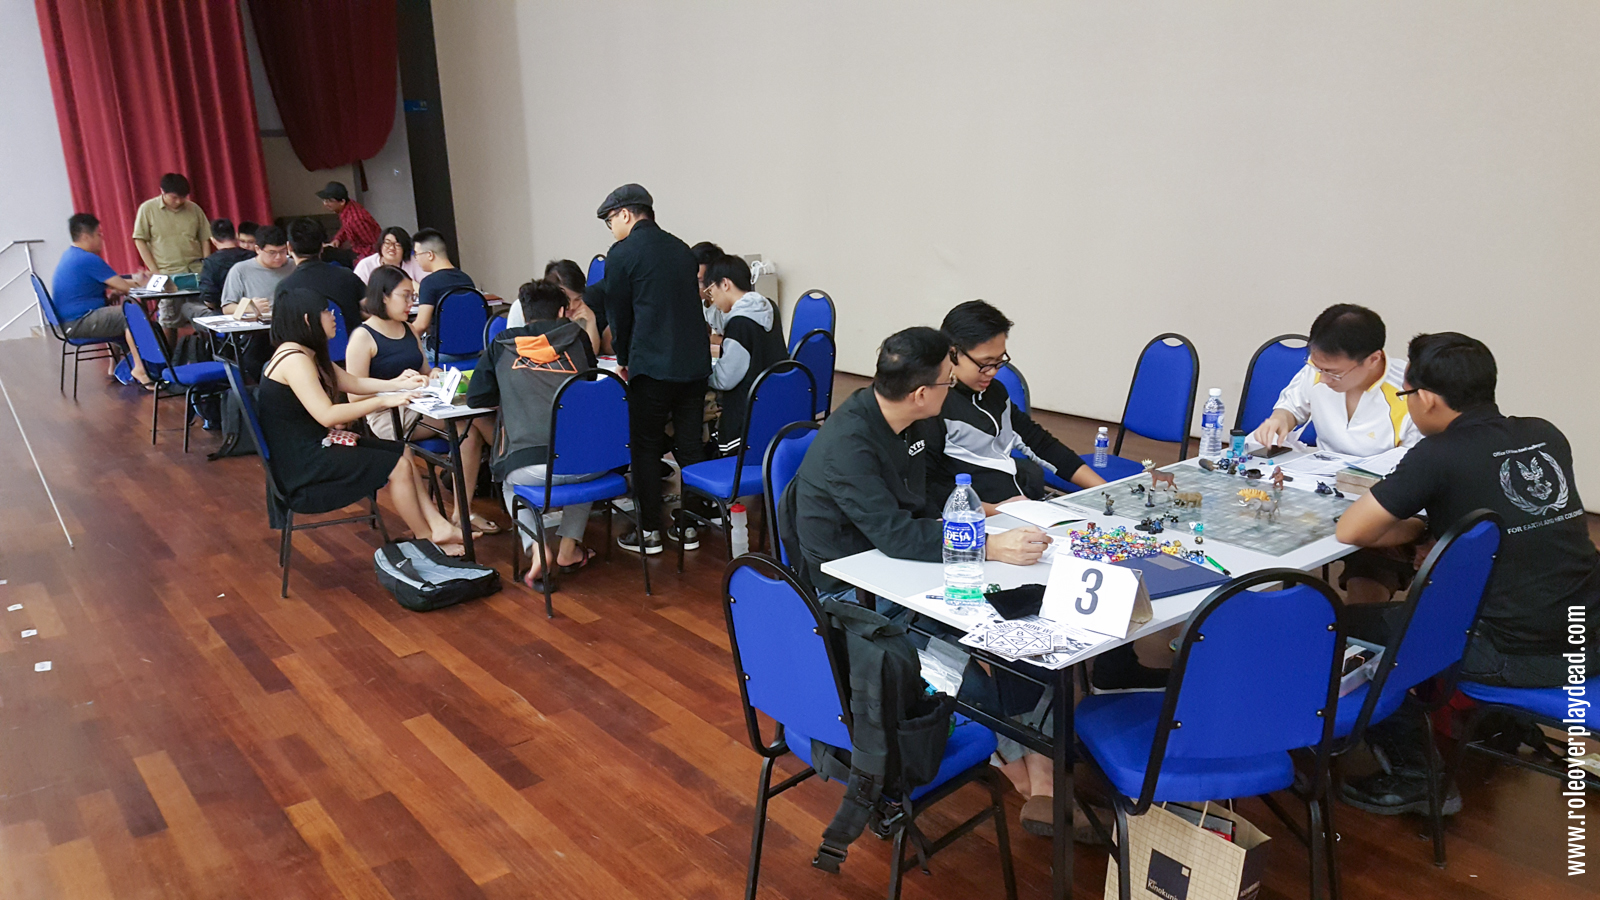 We had packed RPG tables on the stage. From left to right, you can see the games run by GM Razzman Khaliff, GM Lucas, GM Samwise Mui and GM Jerry Khor.